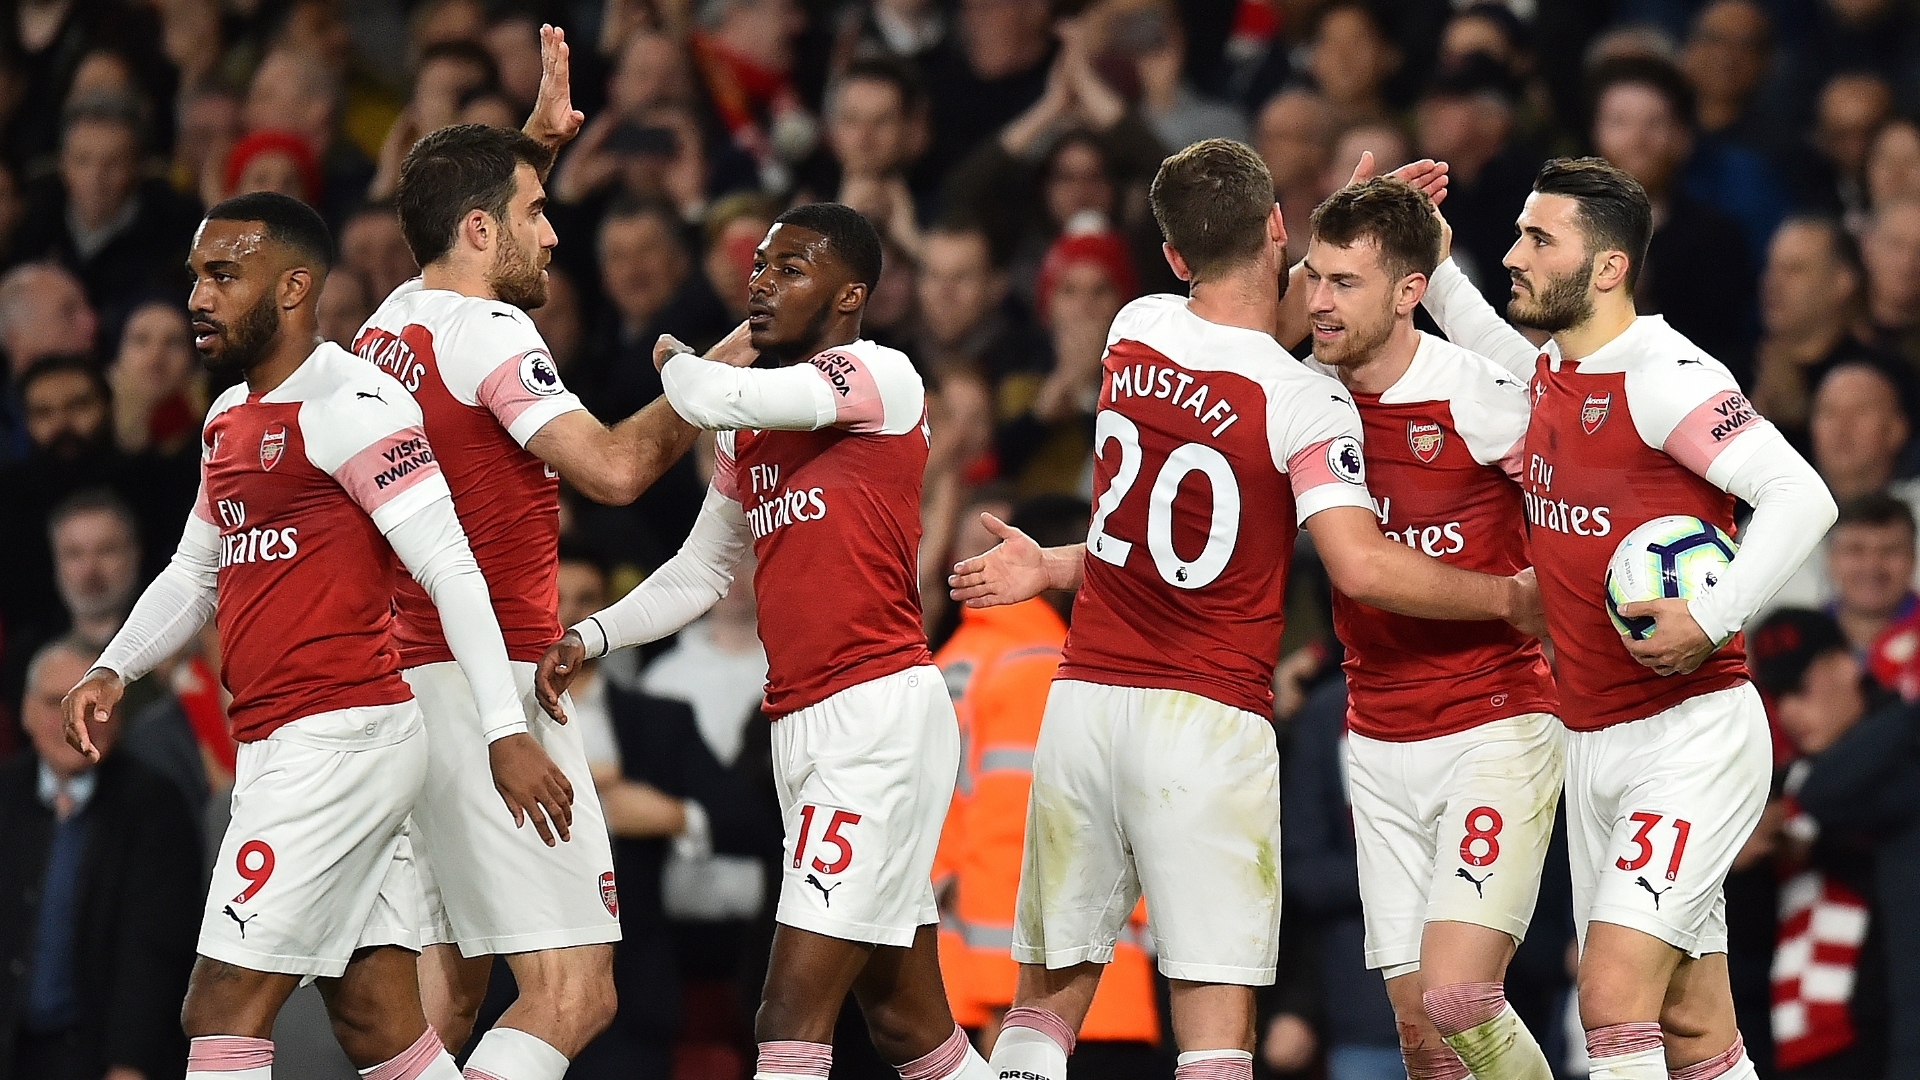 Ainsley Maitland-Niles: 'Arsenal closing in on Champions League return'